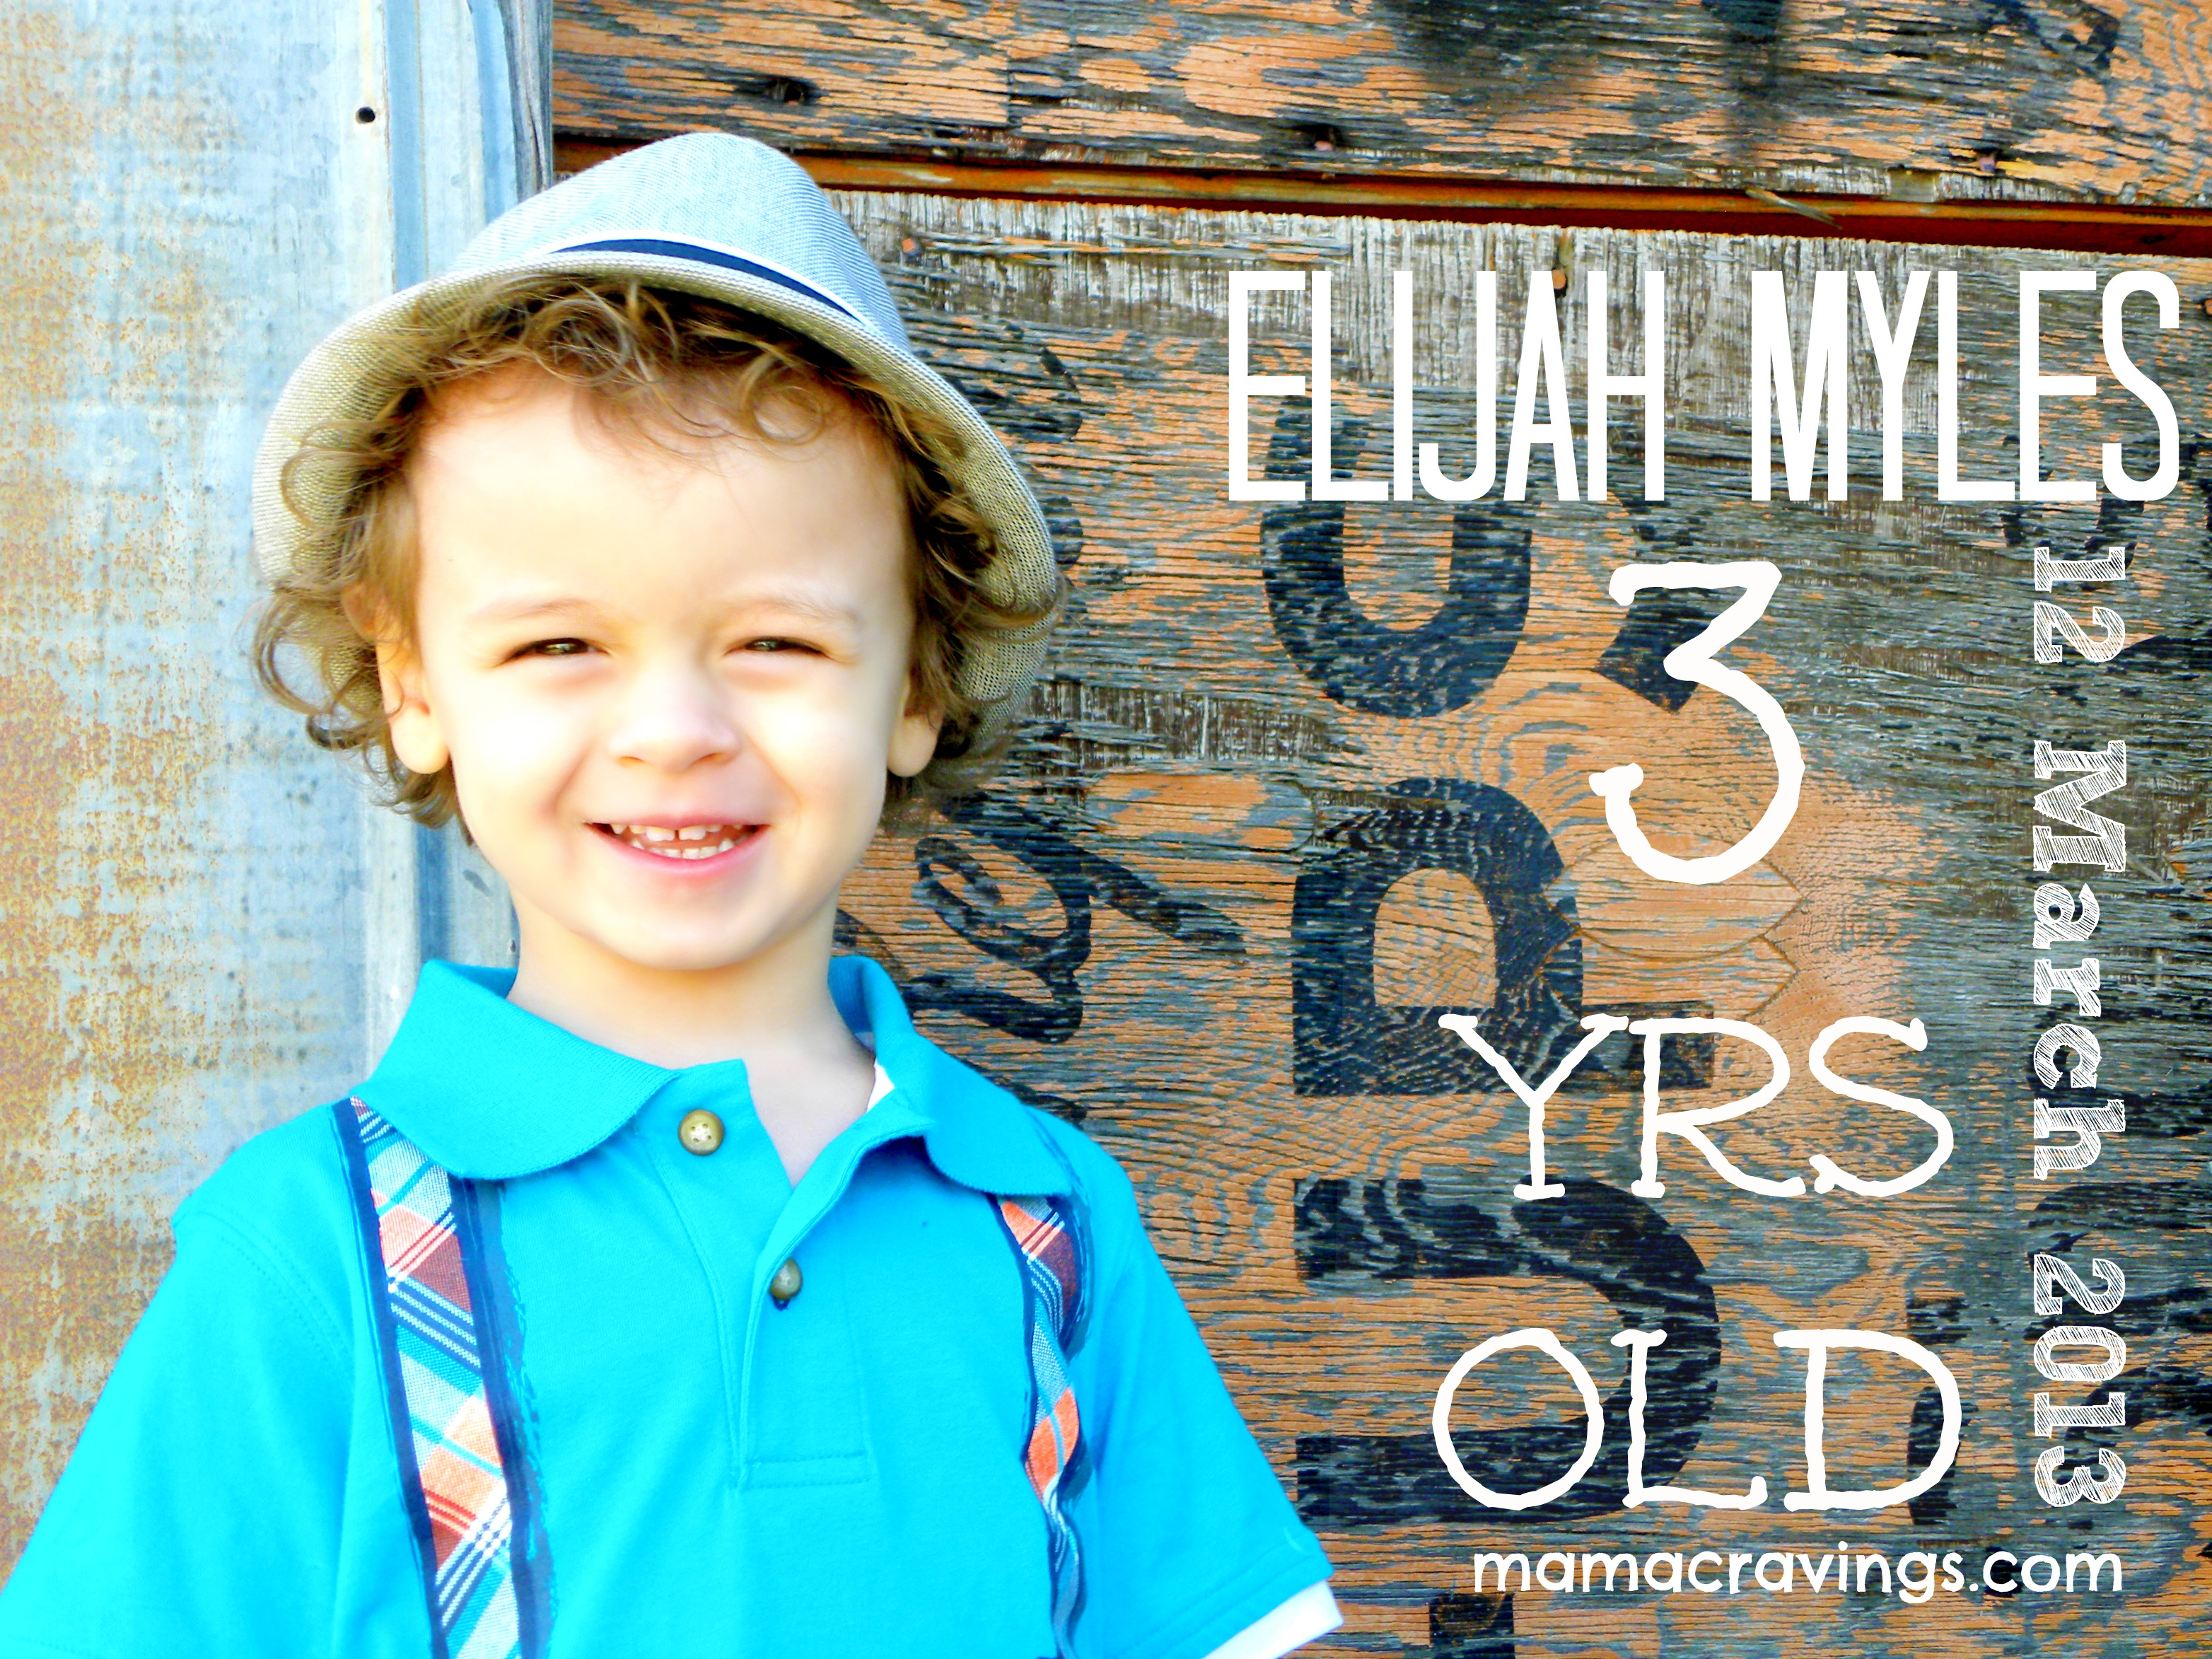 Happy Birthday Elijah Myles